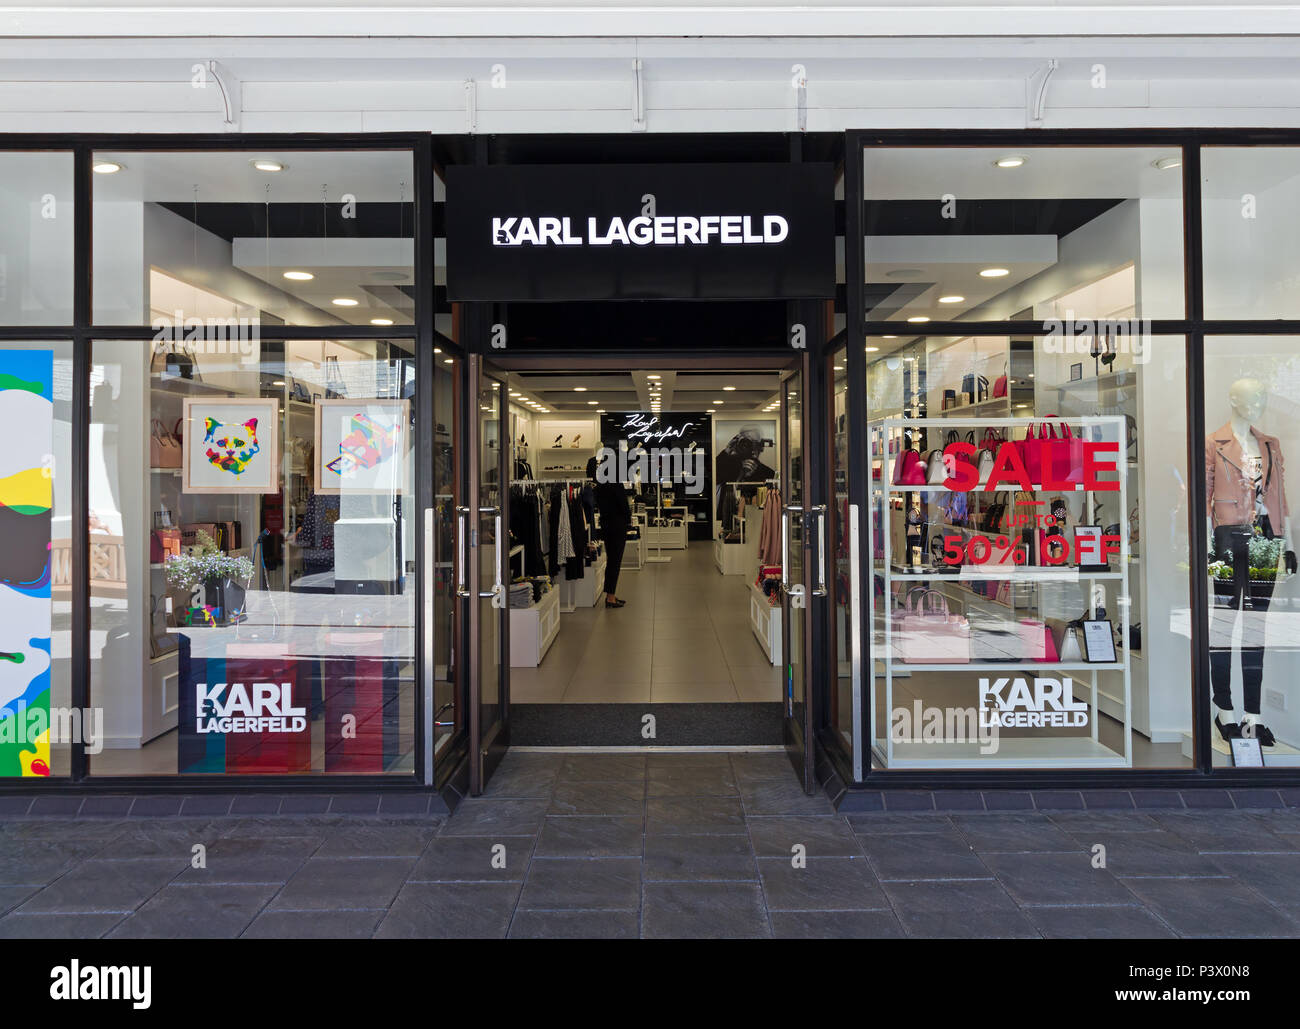 b10baedcce Shop frontage of the Karl Lagerfeld store at the Cheshire Oaks Designer  Outlet